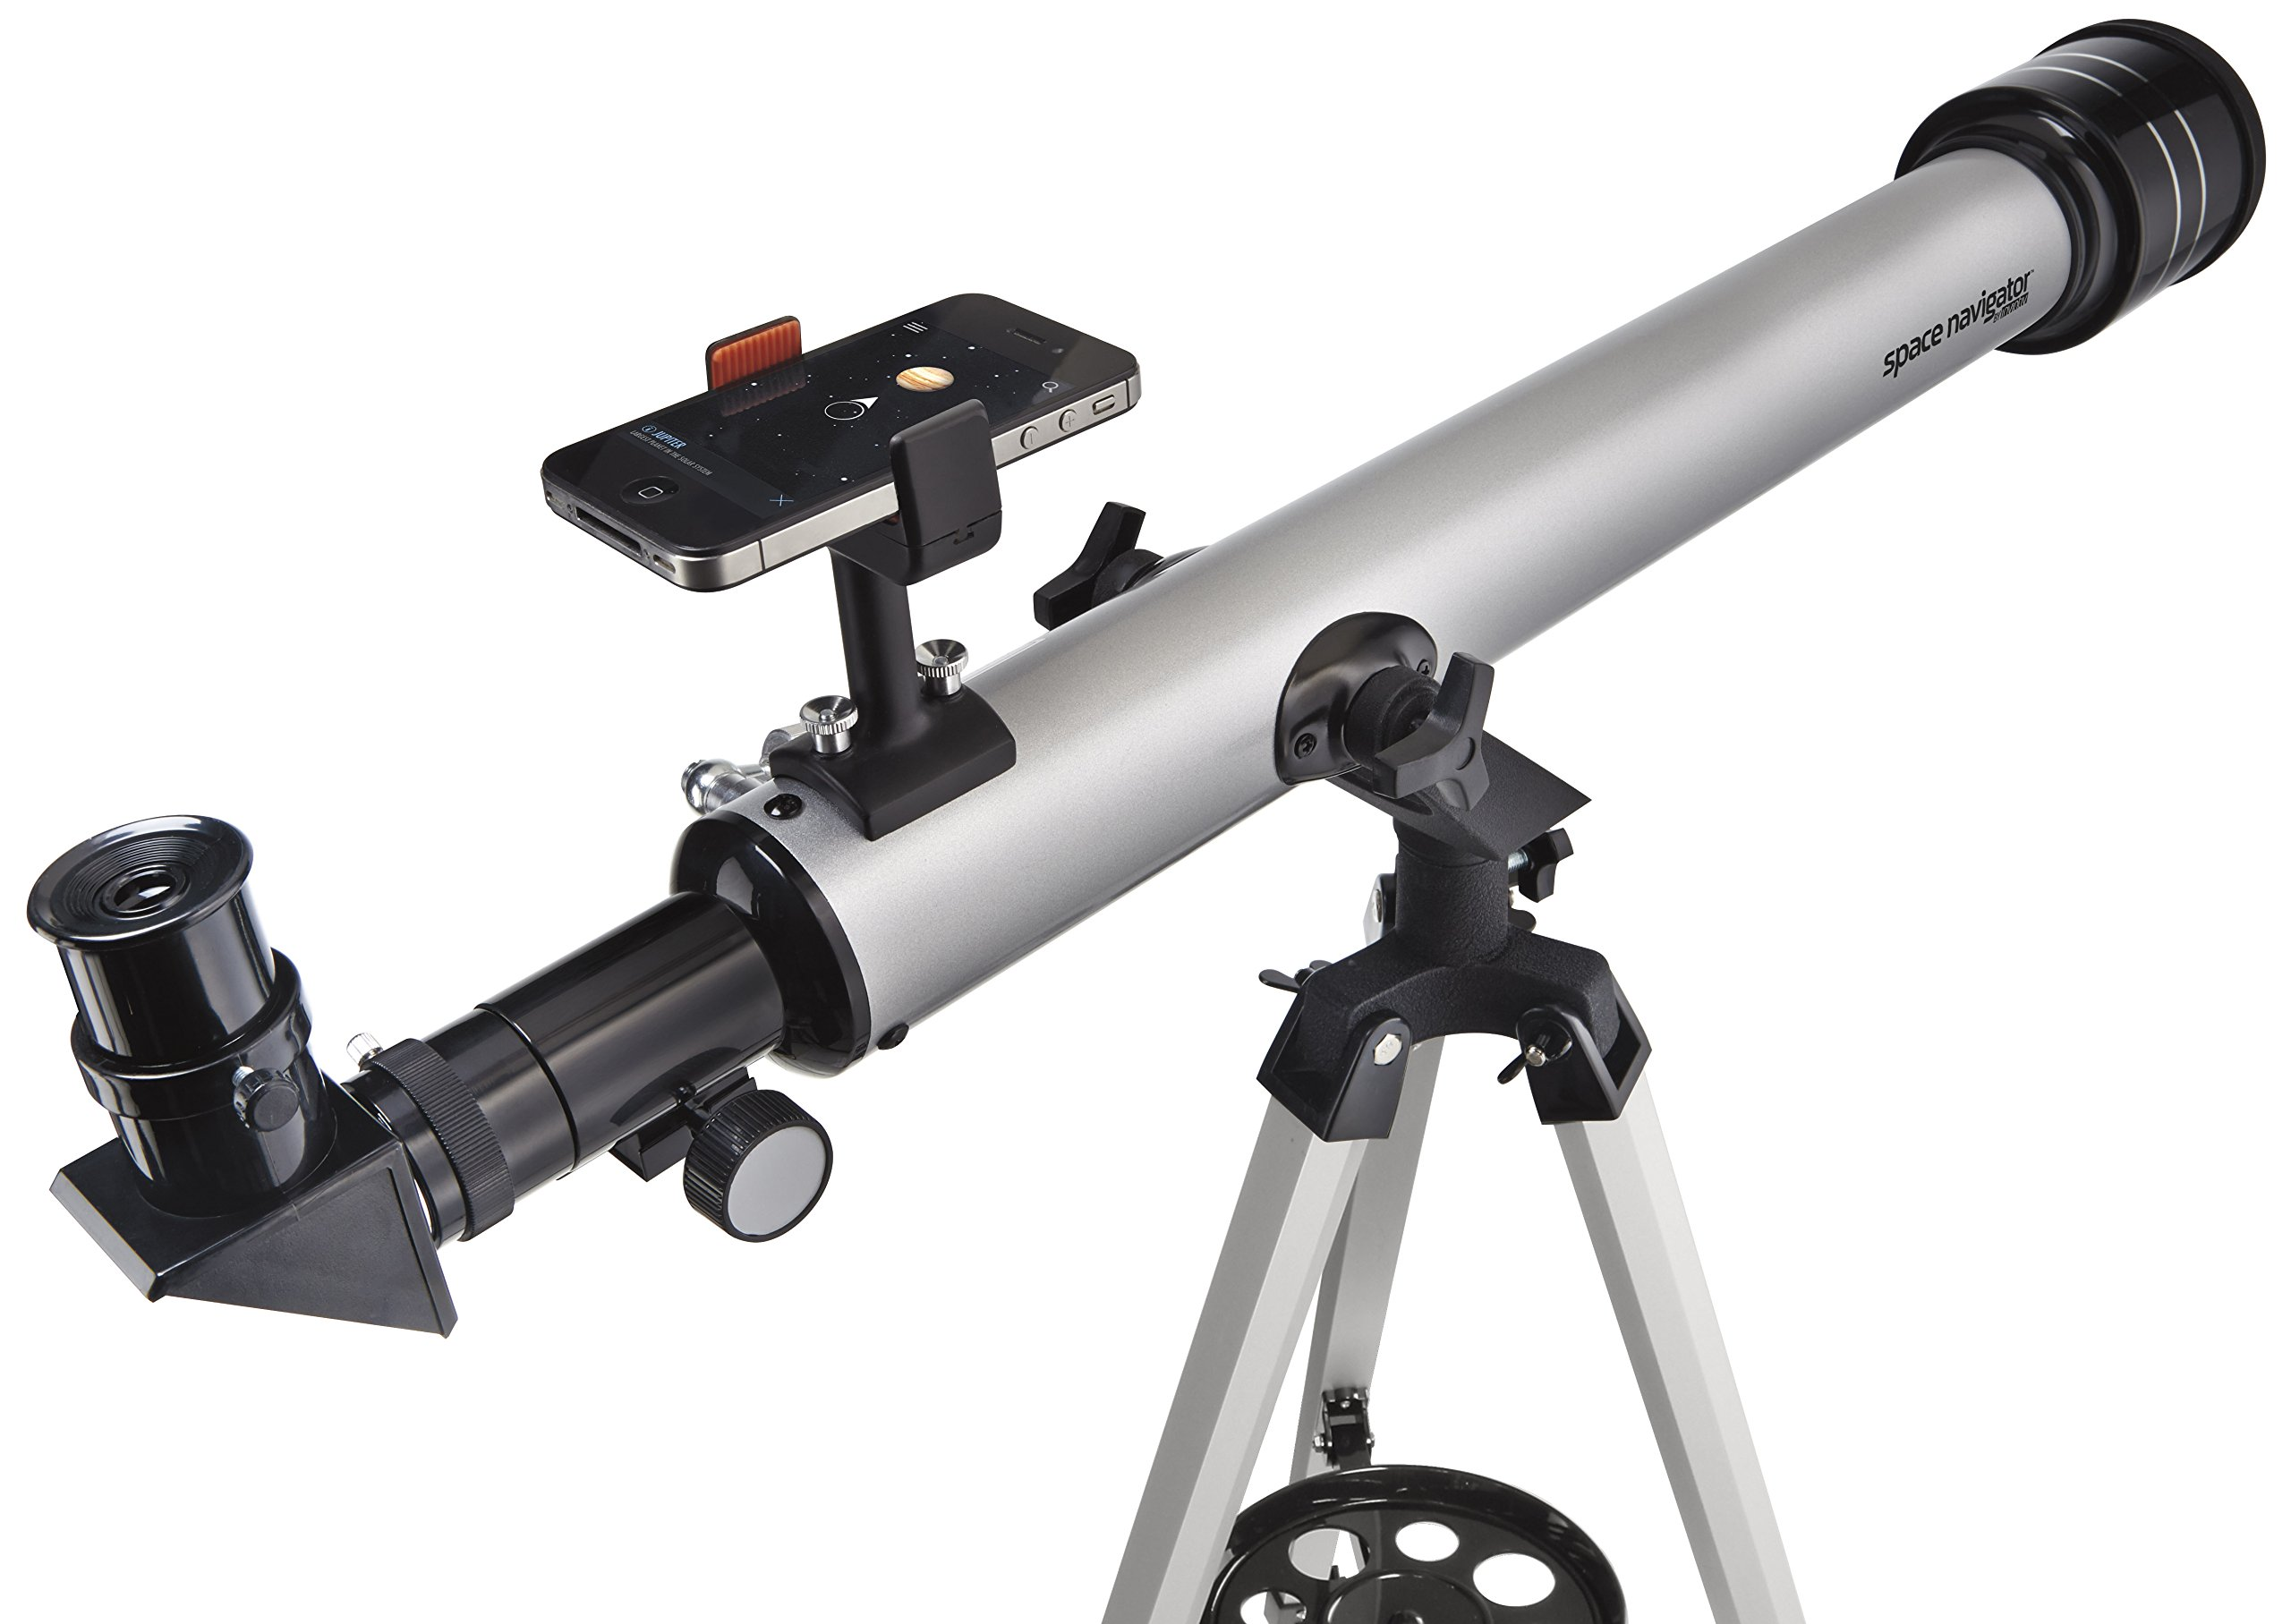 Space Navigator App-Enhanced Star Finding Deluxe Telescope - Powered by SkyView, Silver/Black